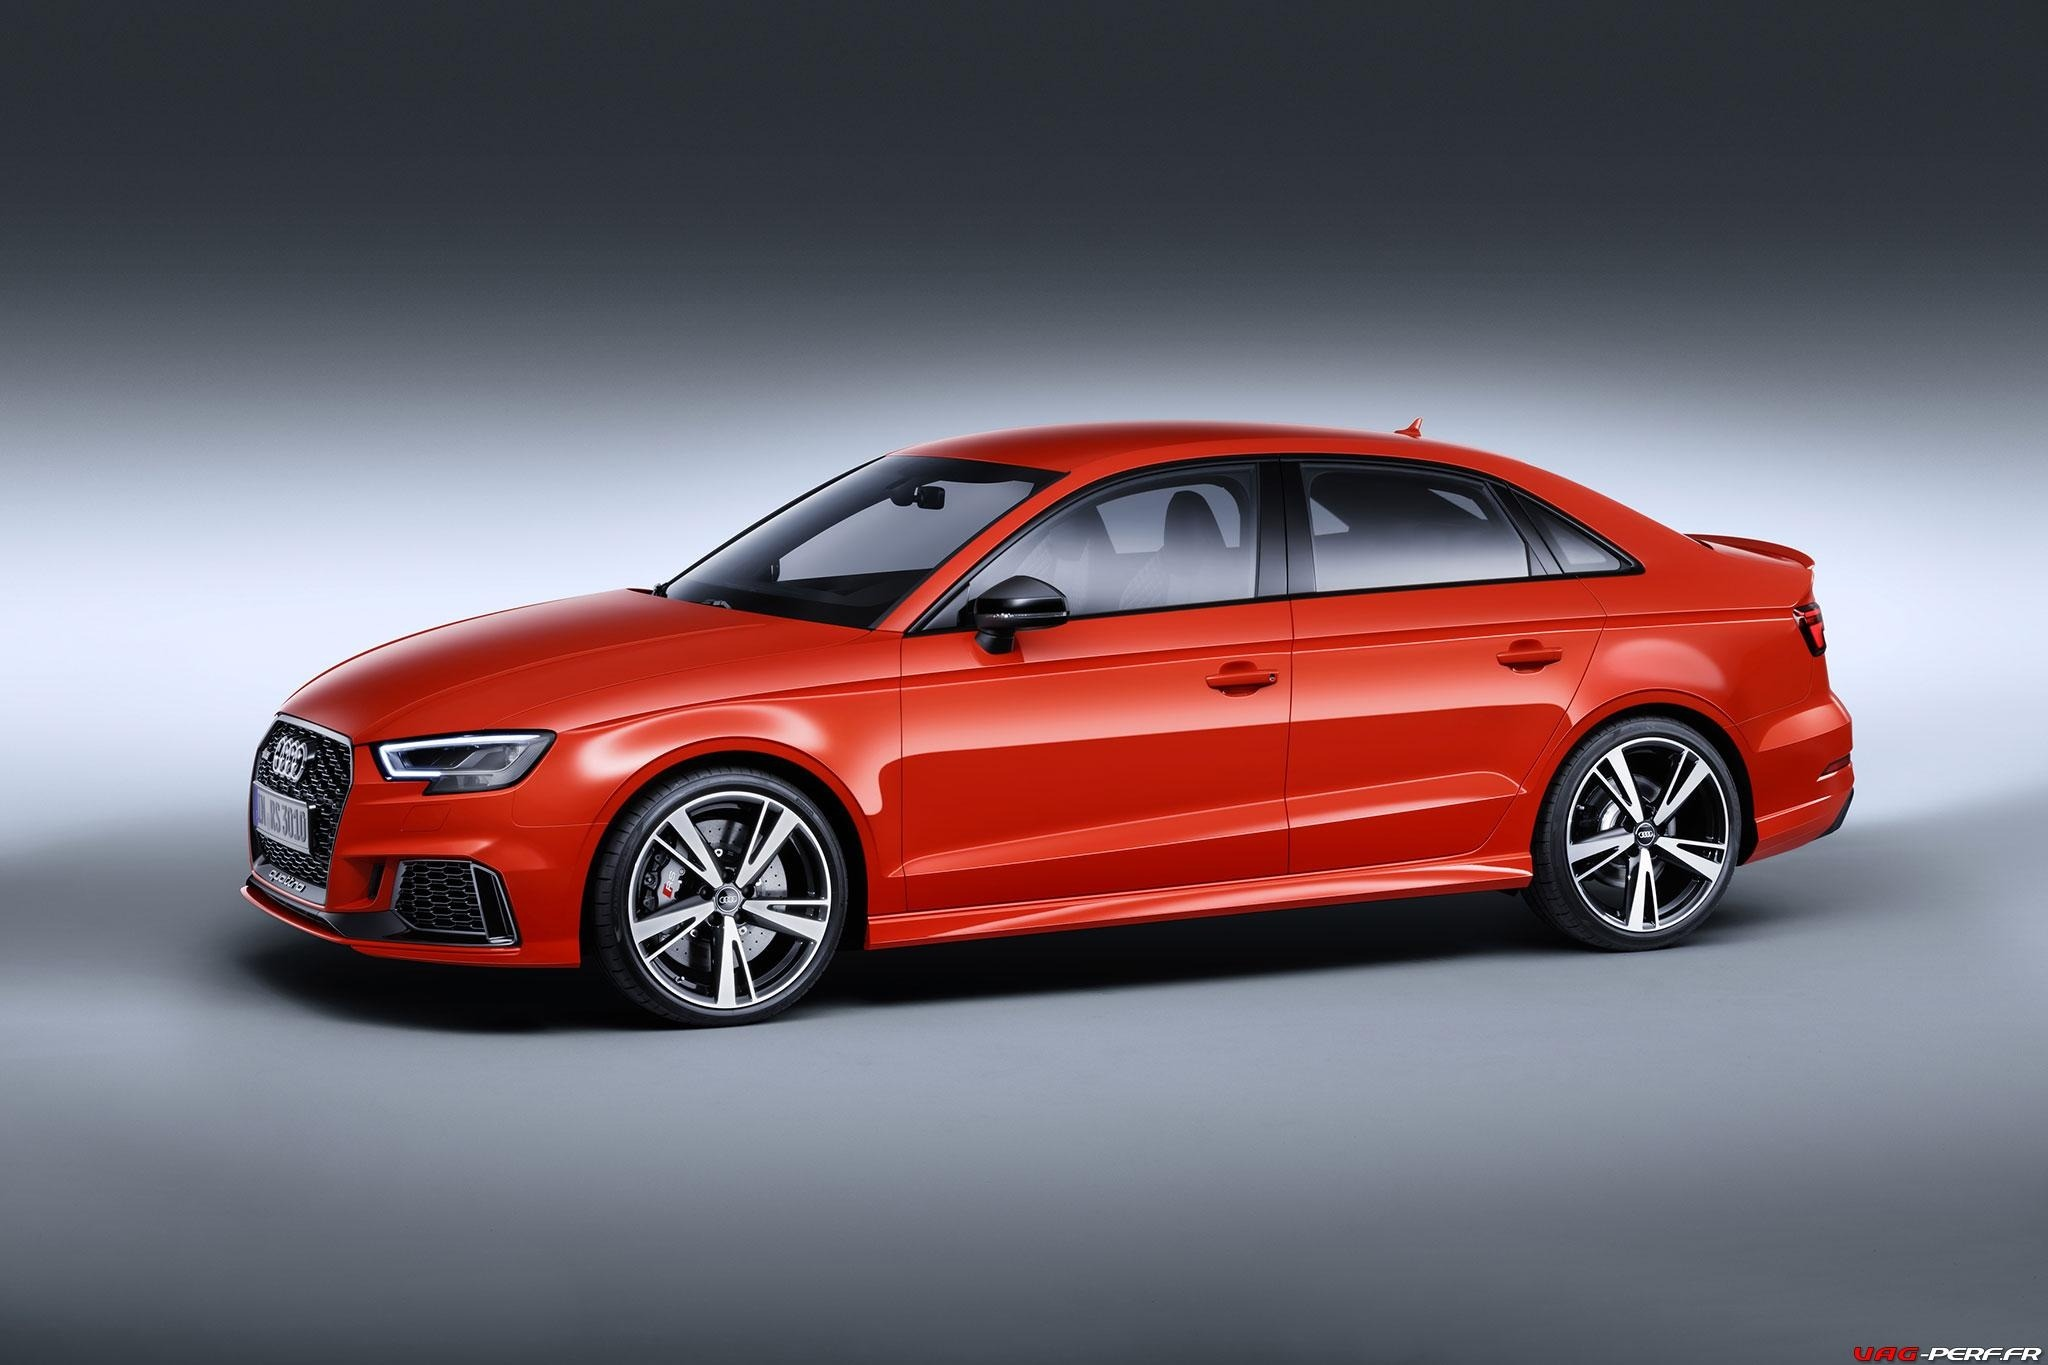 2016_Audi-RS3-Sedan-Officiel_02